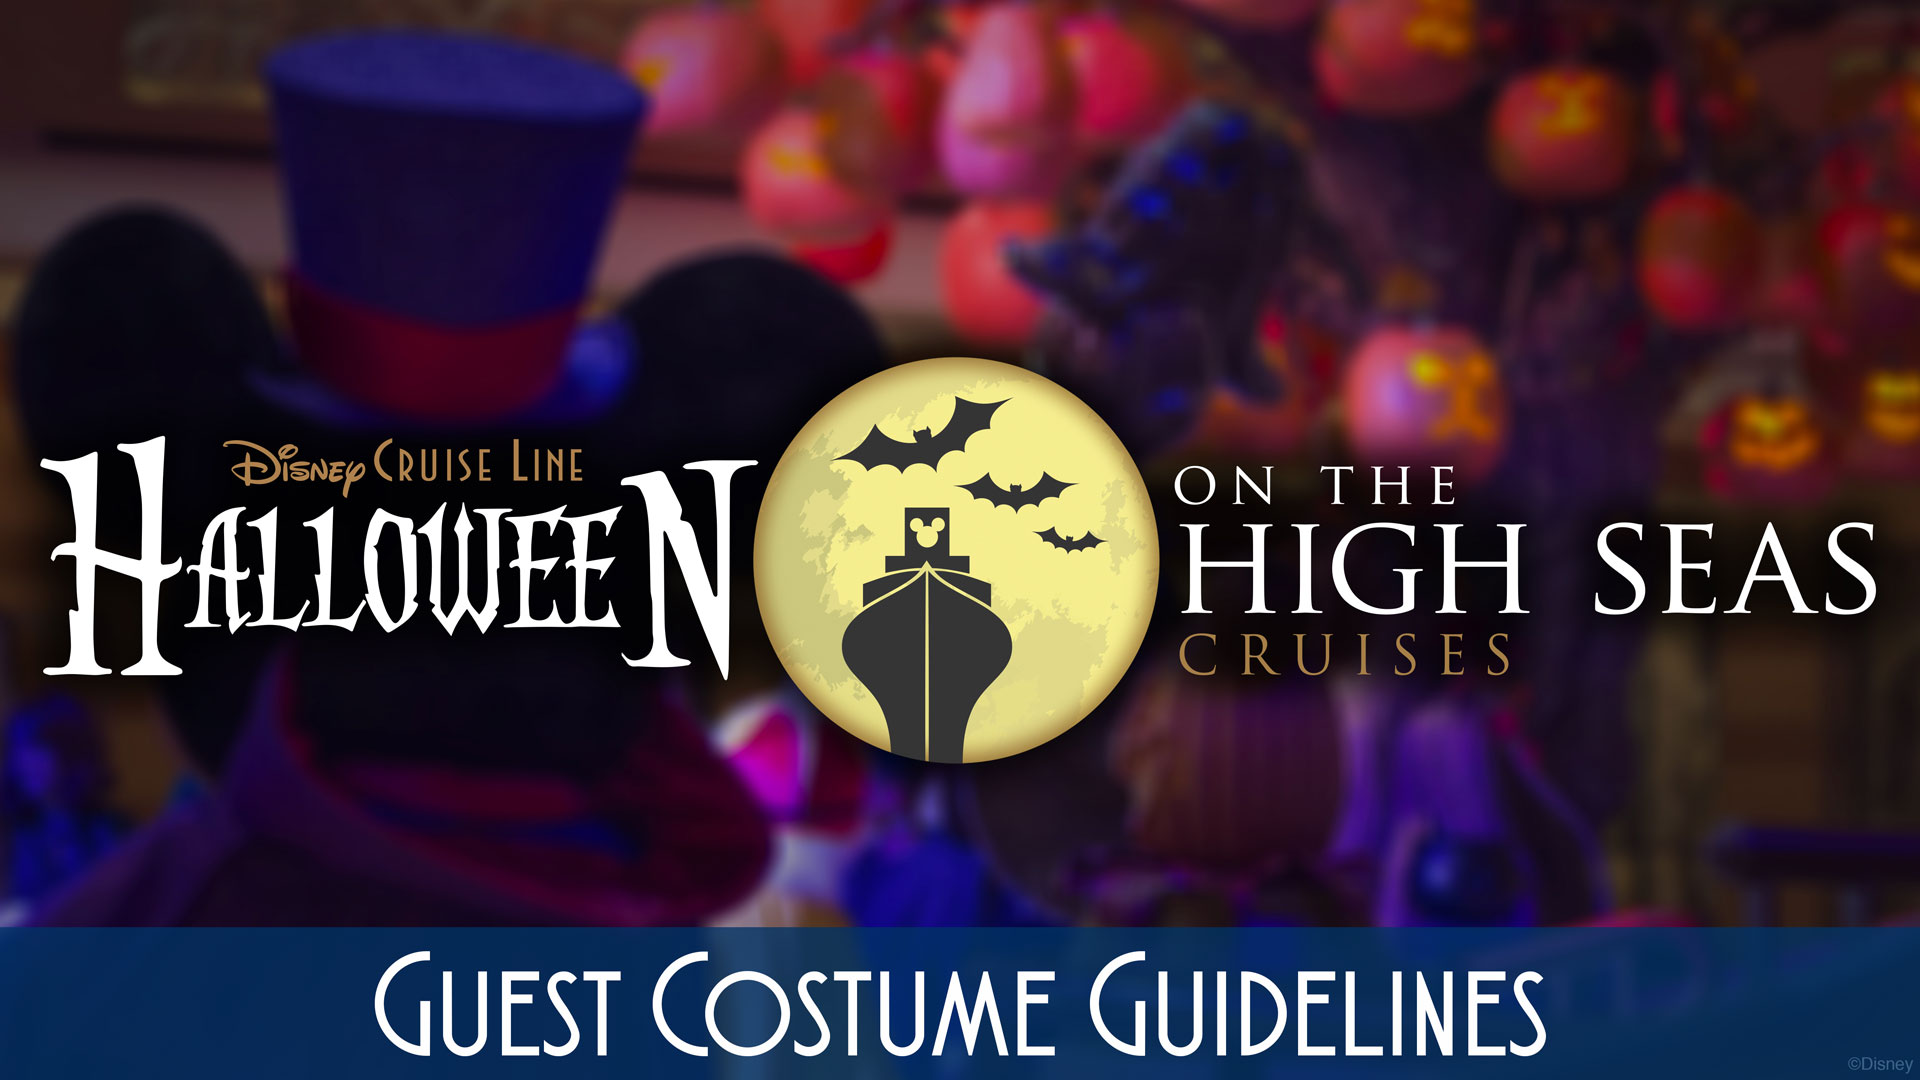 DCL HotHS Guest Costume Guidelines